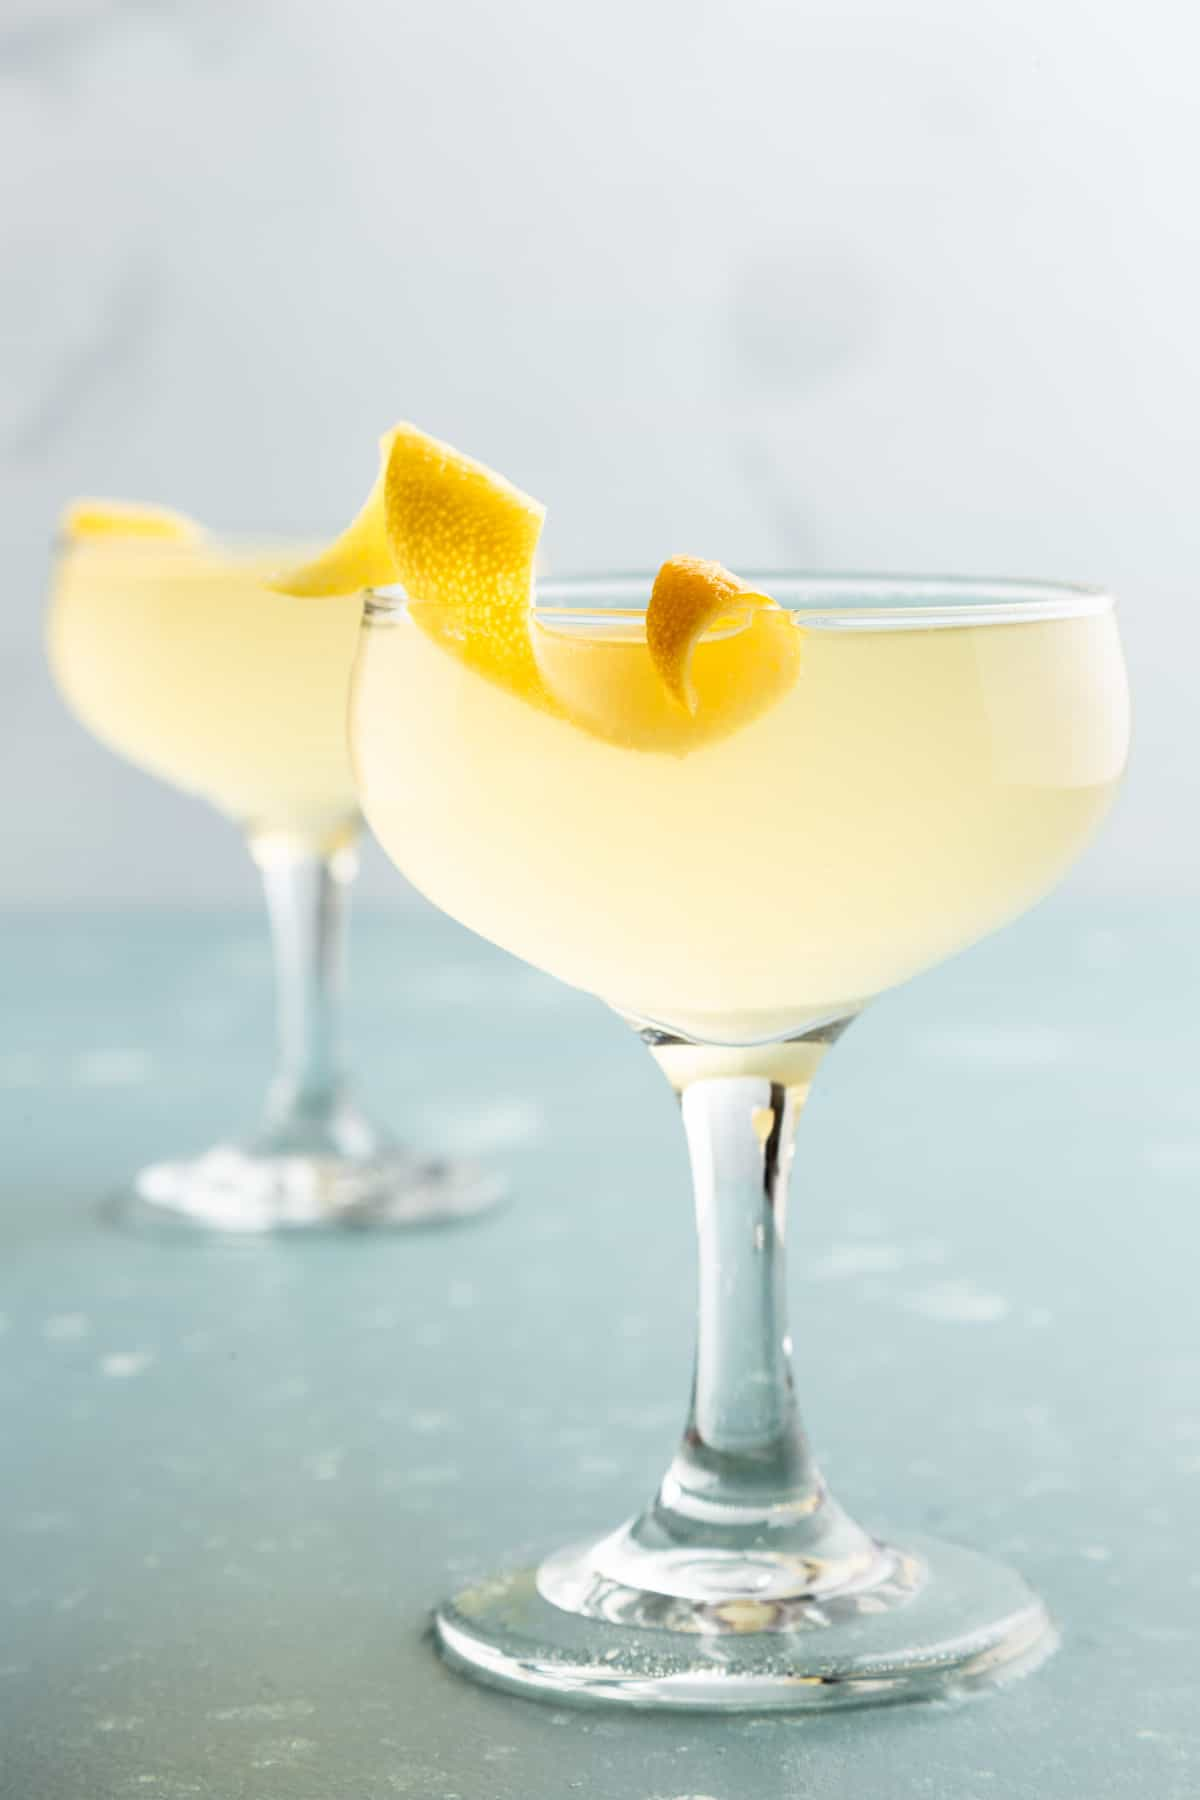 Closeup of a yellow cocktail with a lemon twist